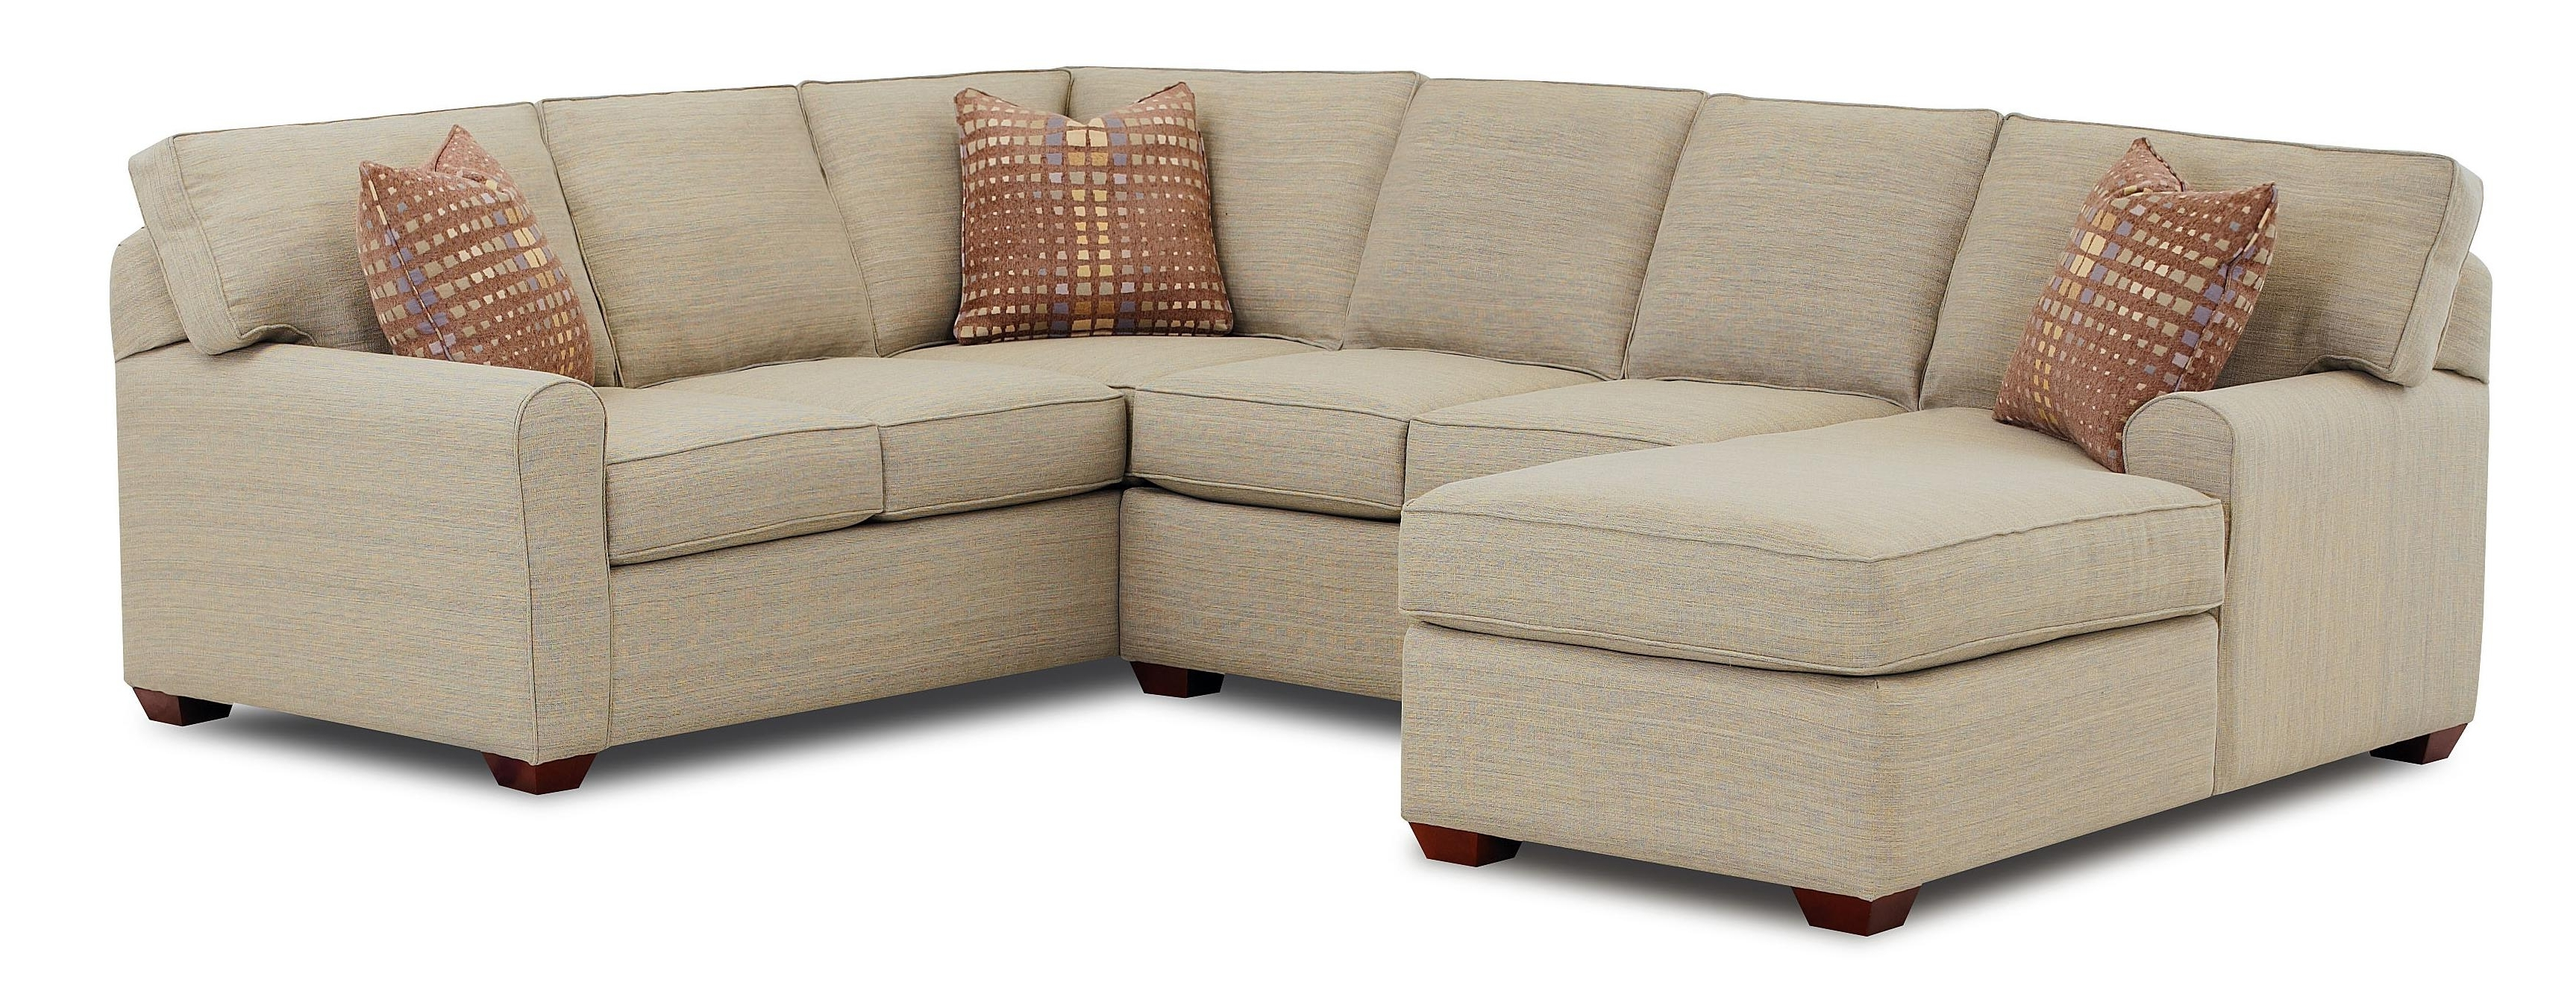 Wolf Pertaining To Most Popular Sectional Sofas With Chaise Lounge And Ottoman (View 15 of 15)